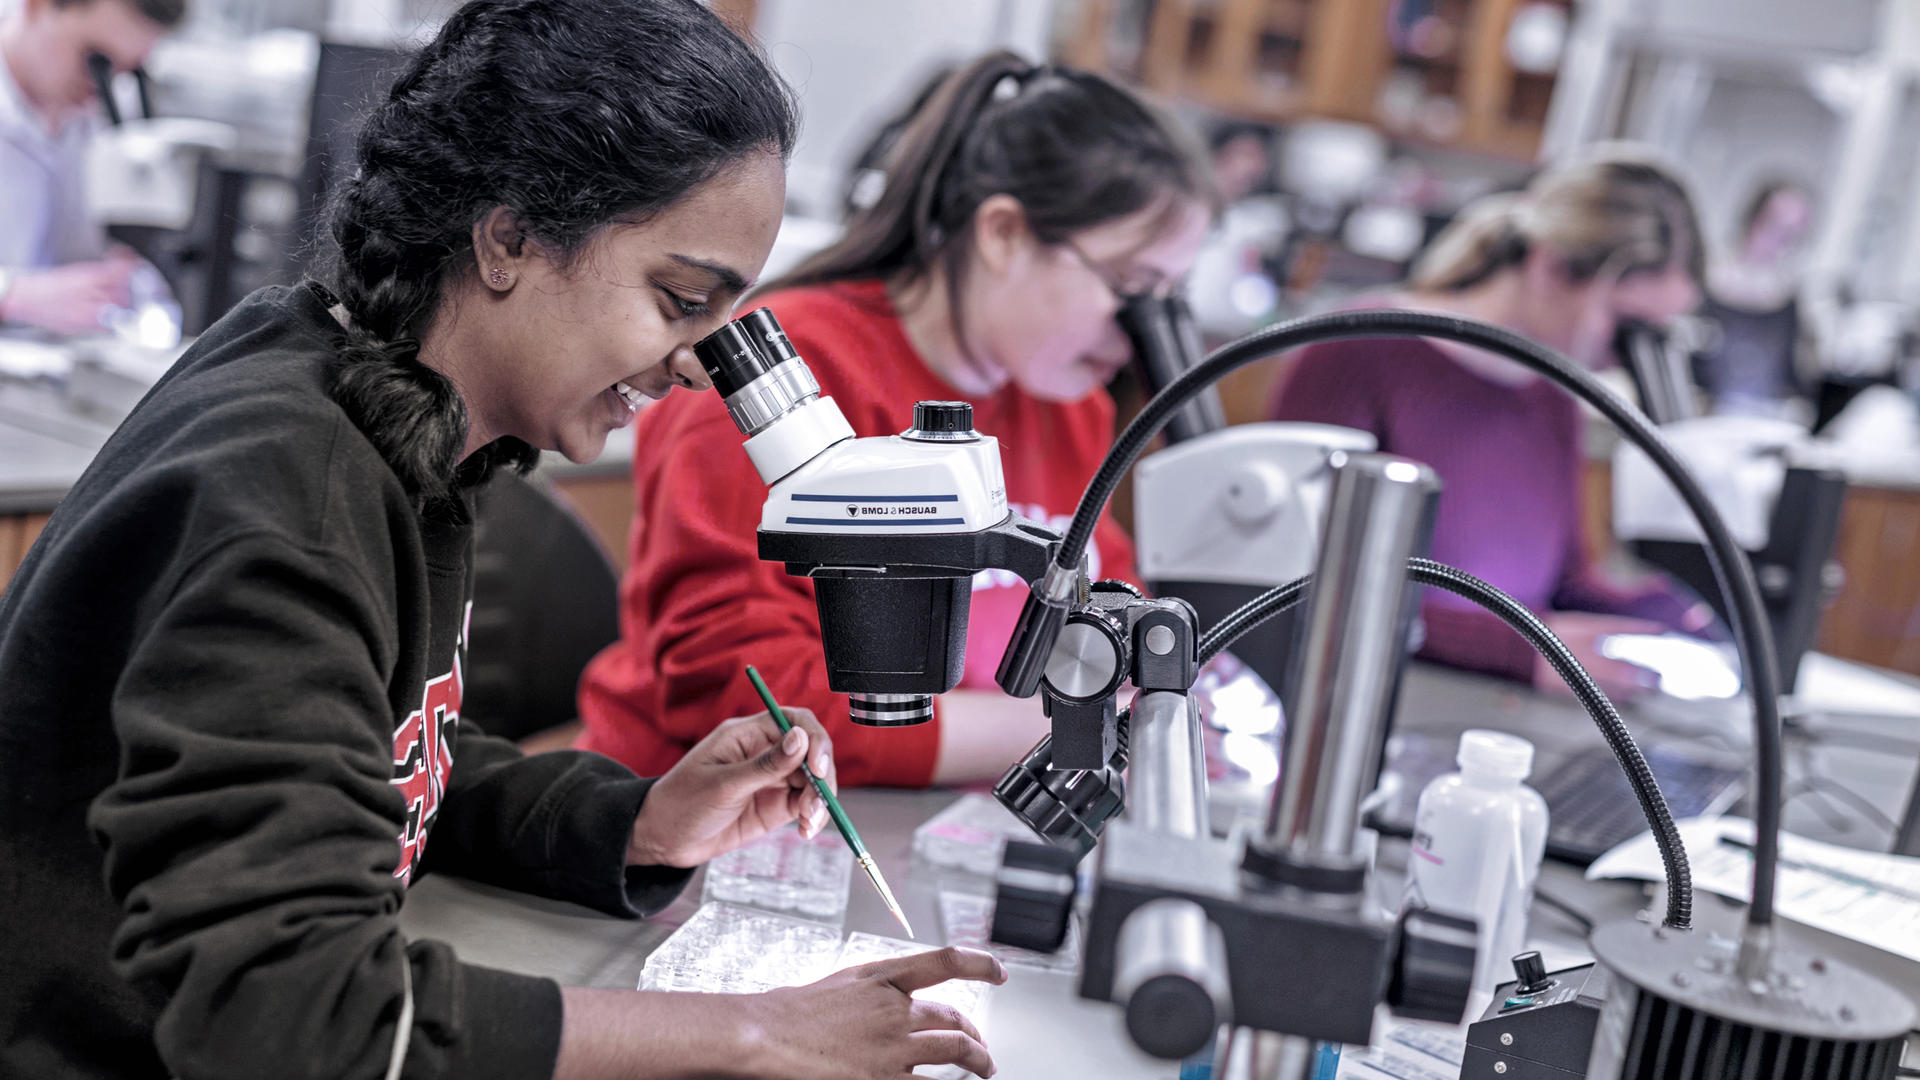 students looking through microscopes in a lab